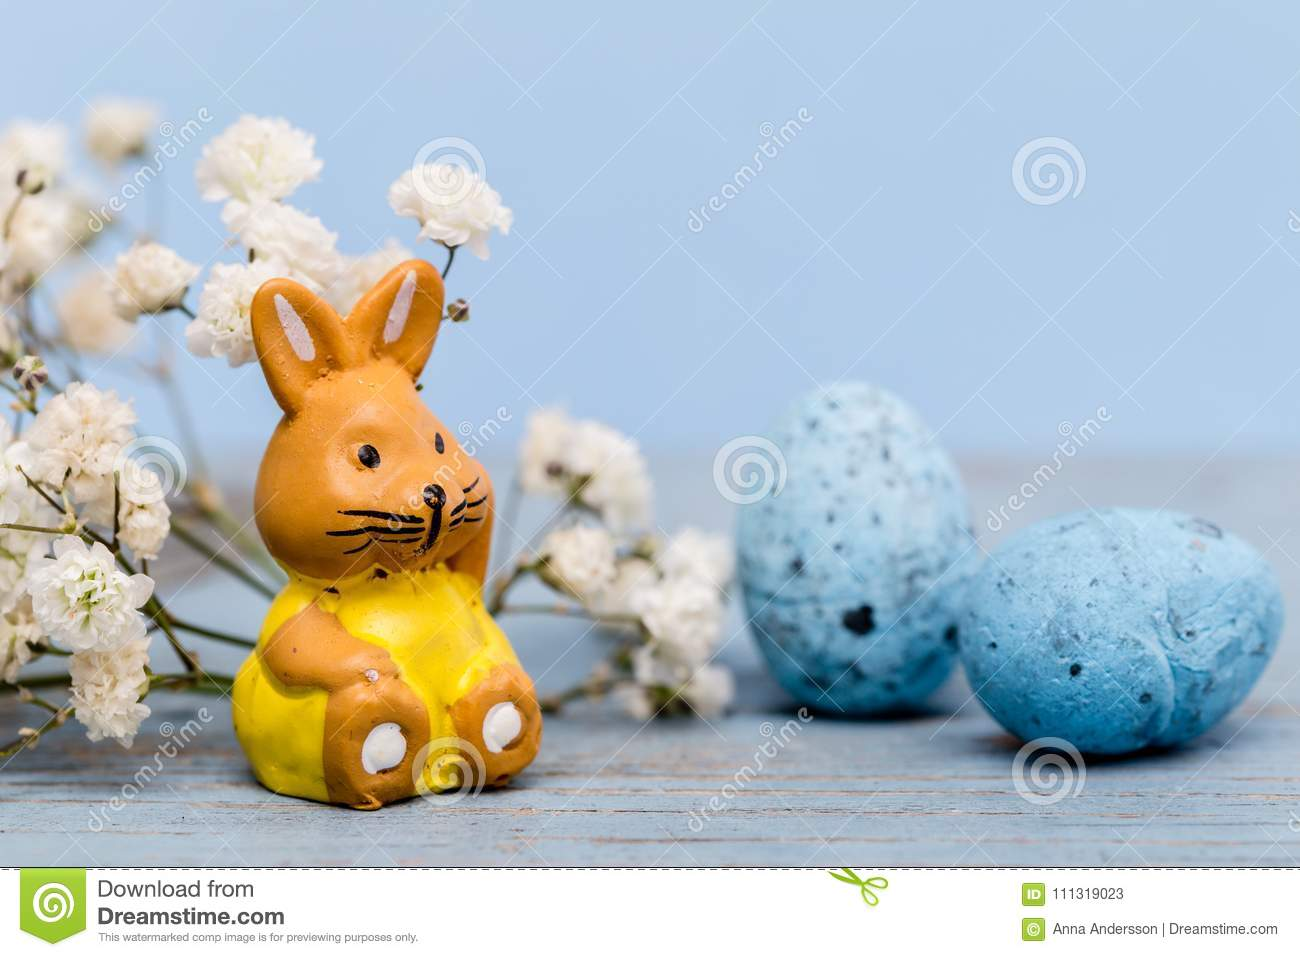 Easter background with eggs and a easter bunny and white flowers on blue paper